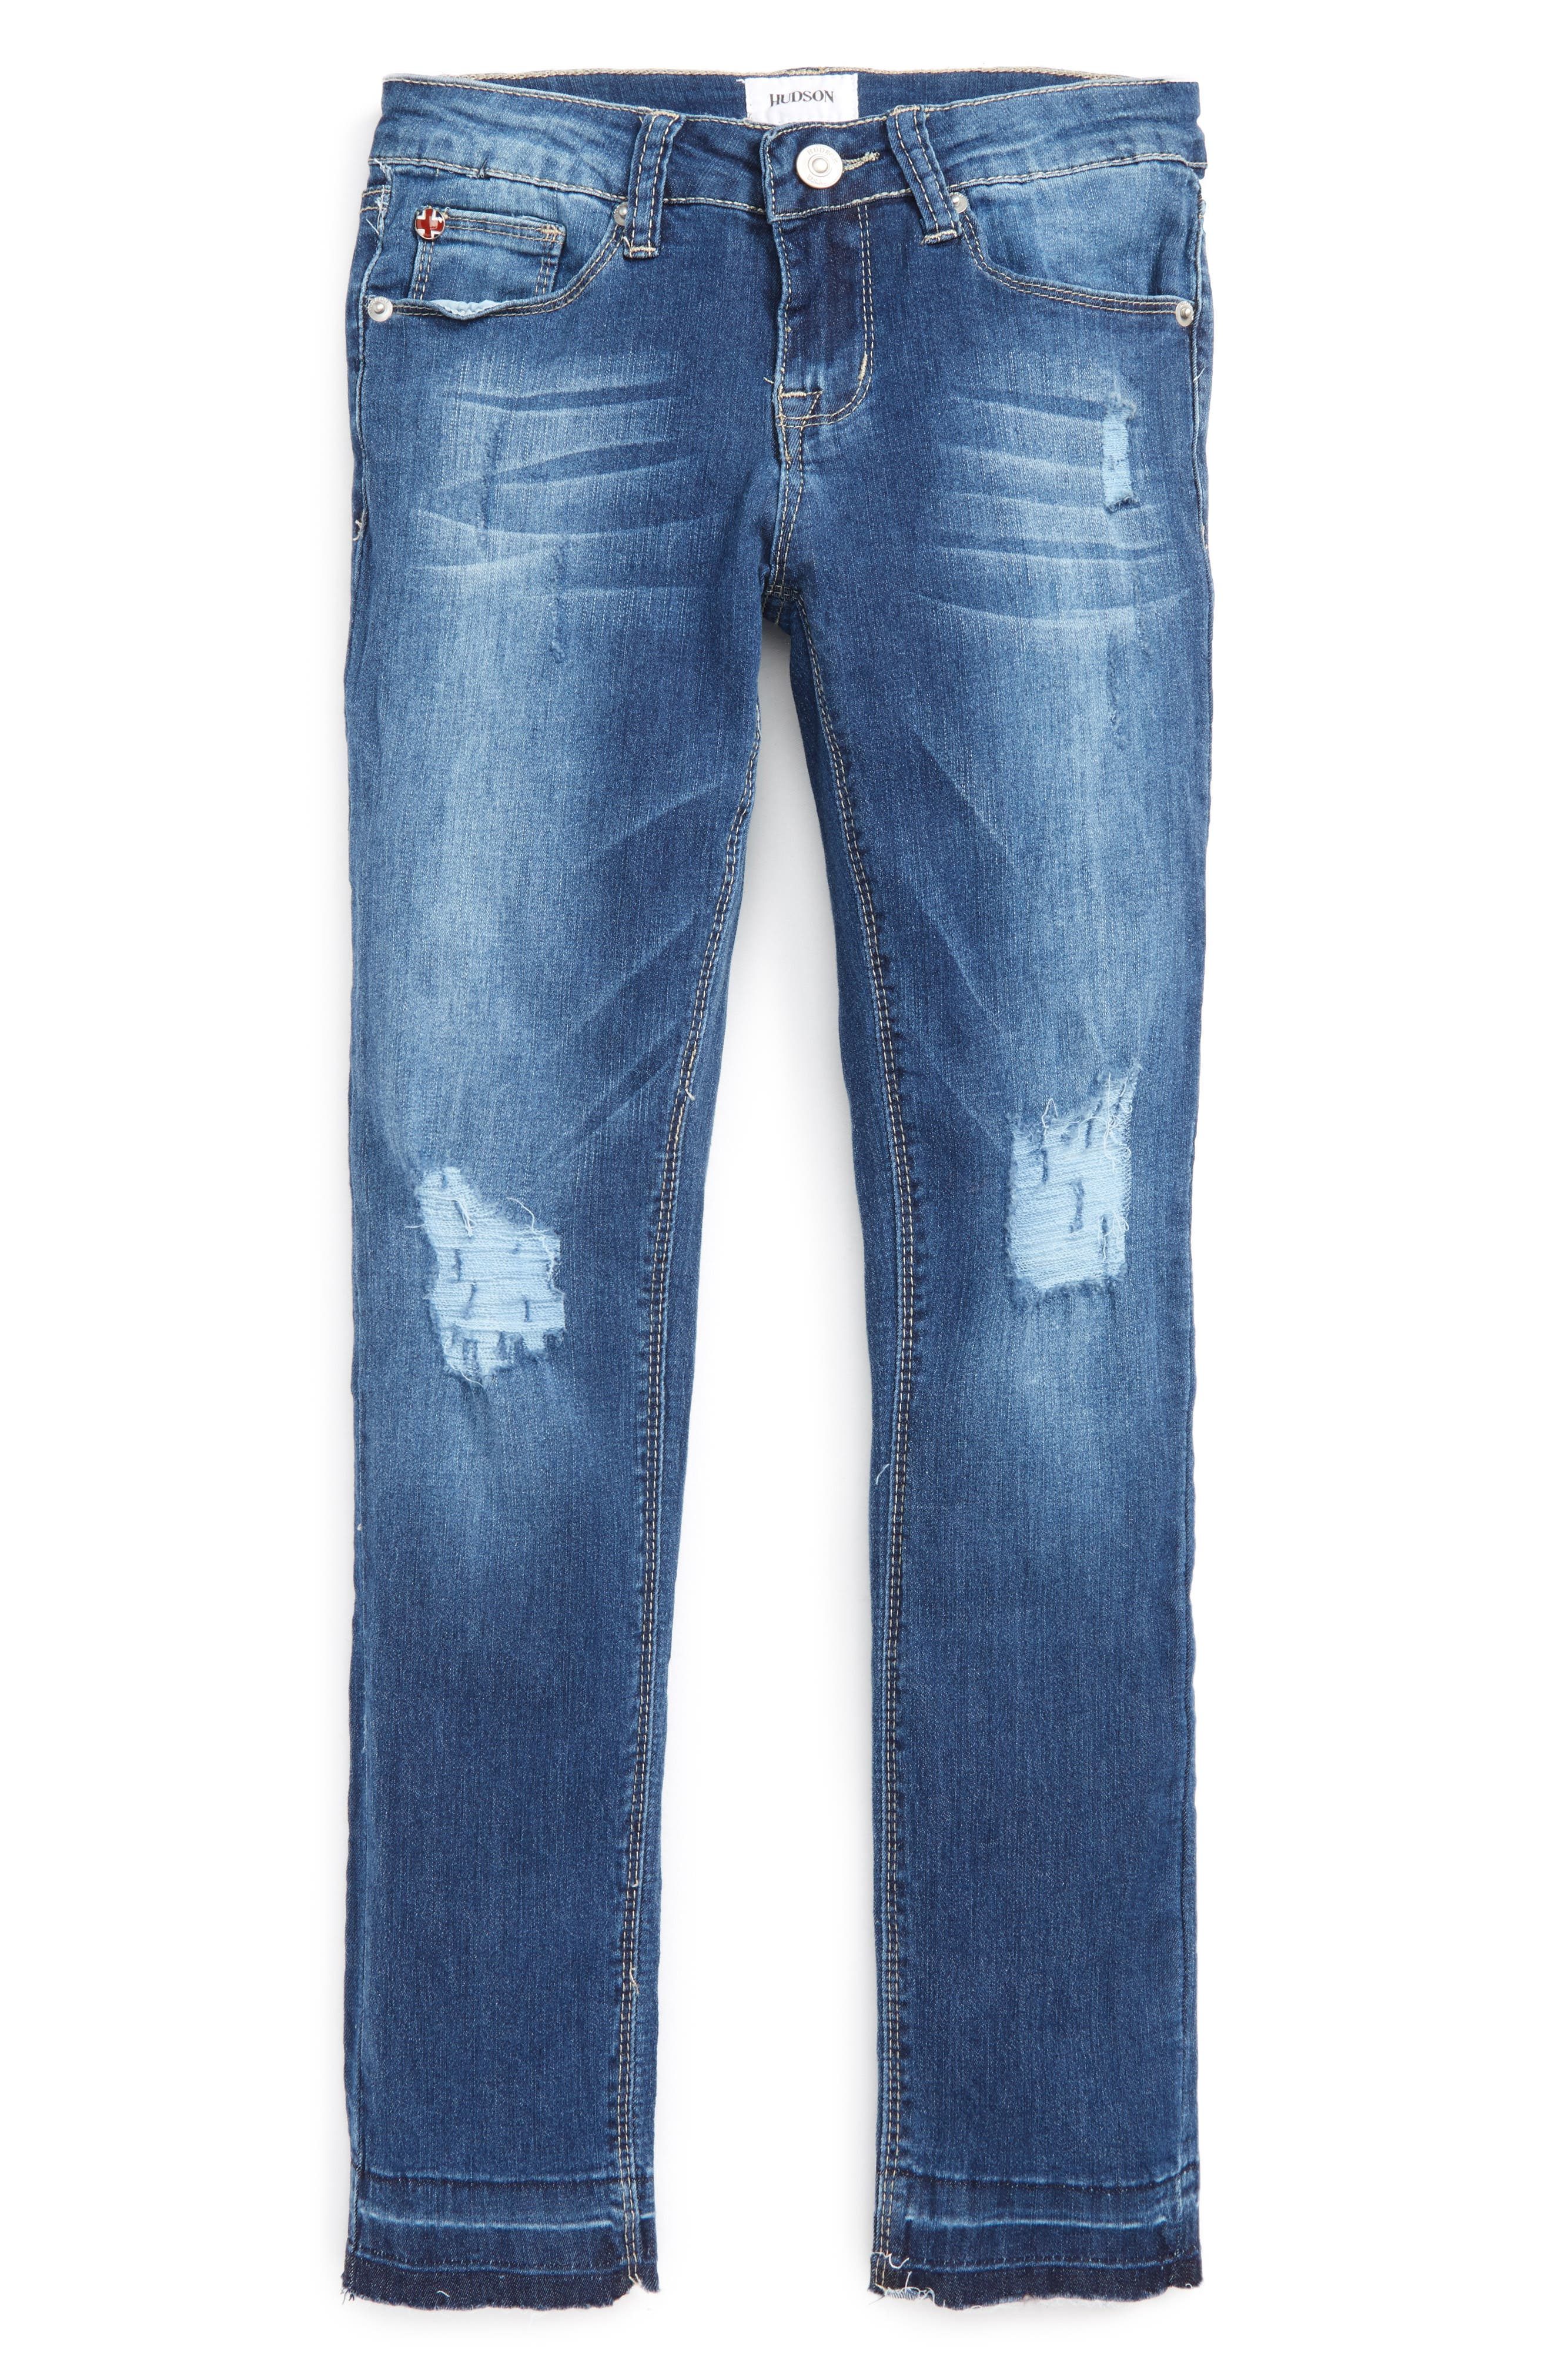 Alternate Image 1 Selected - Hudson Kids Nico Ankle Skinny Jeans (Big Girls)